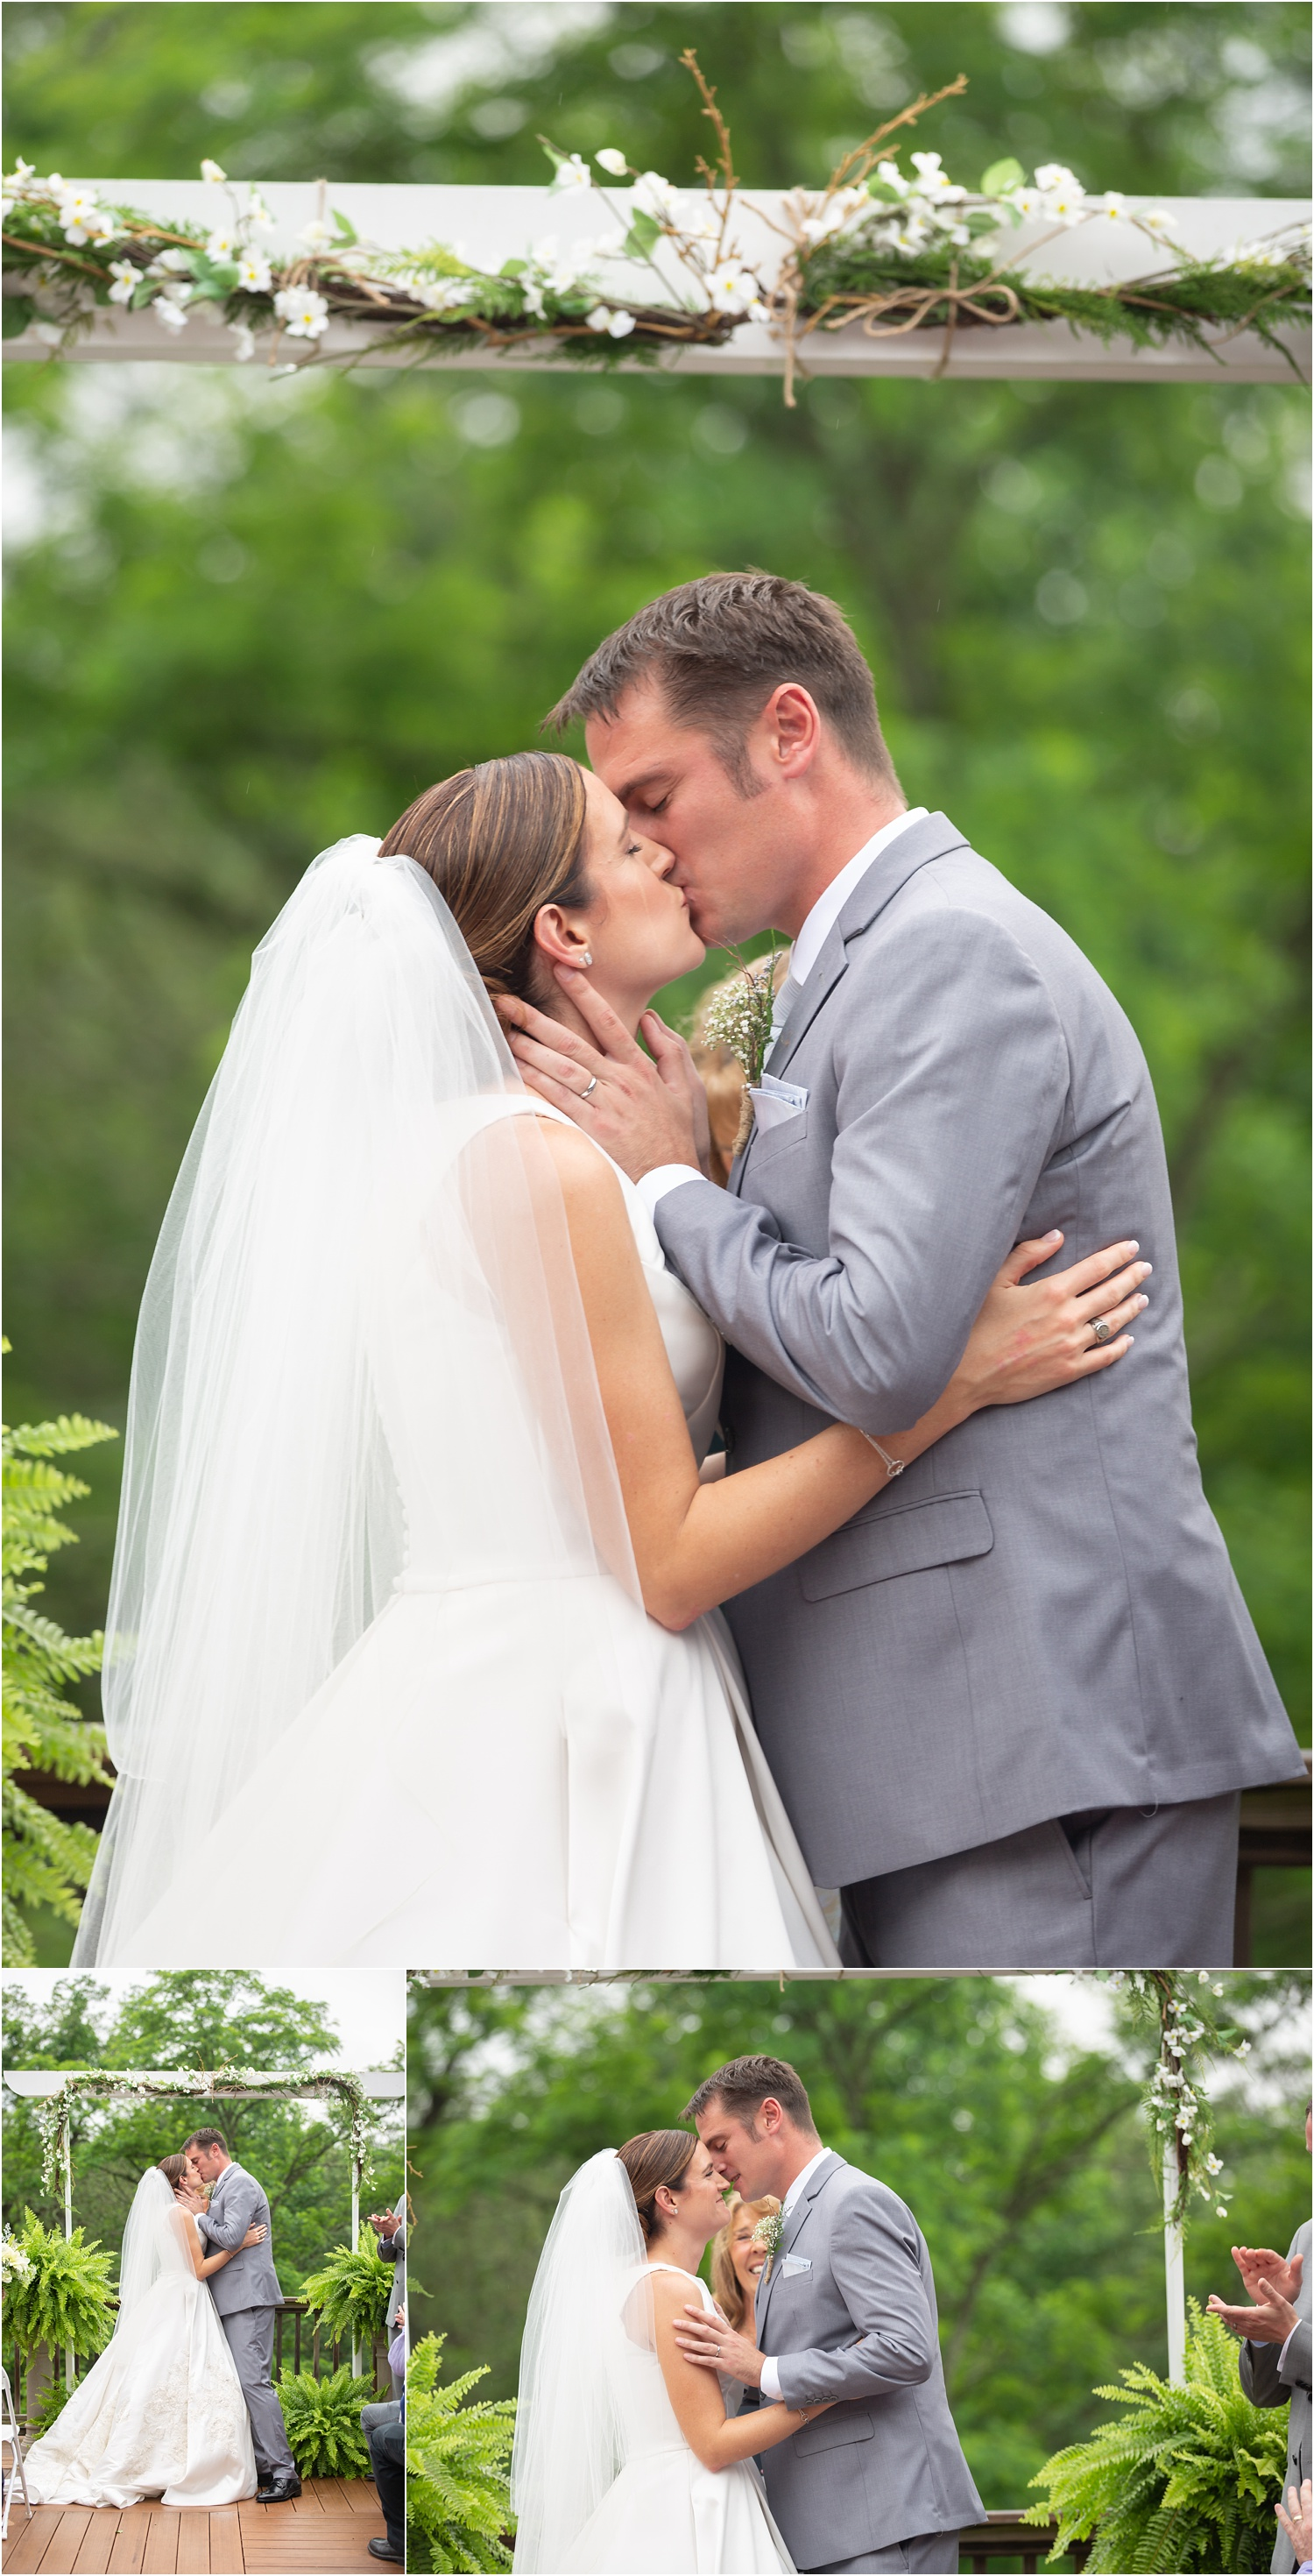 carrieandjeremy_maryngravesproduction_wvweddings_0538.jpg